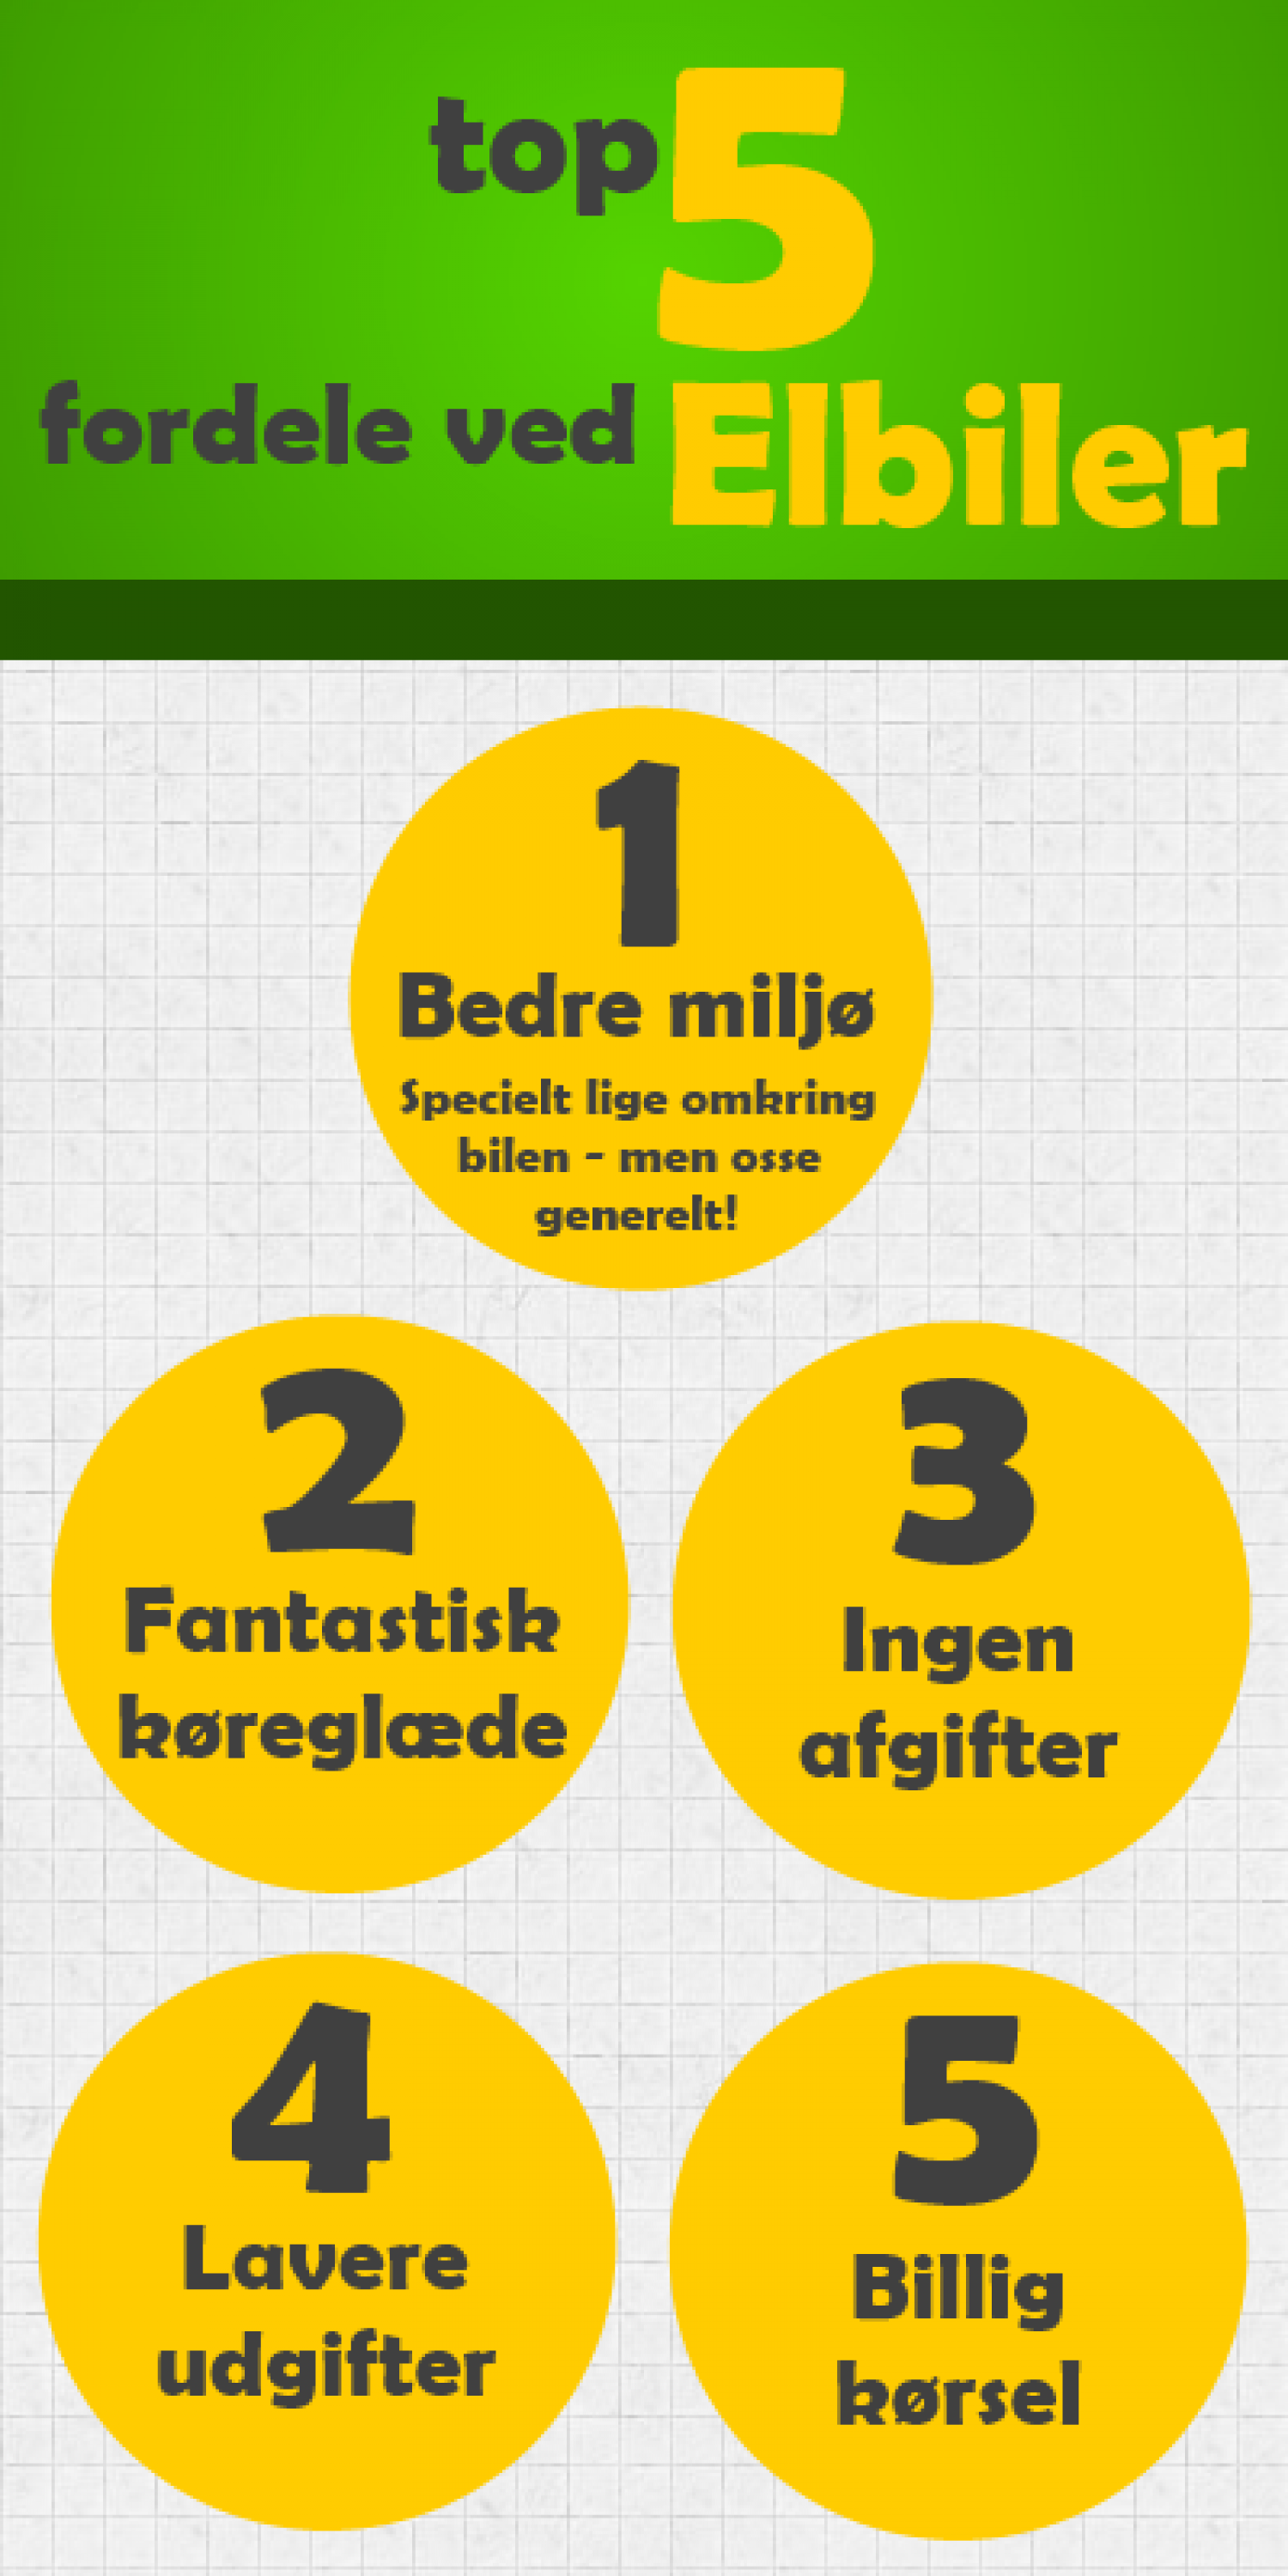 Top 5 Fordele Ved Elbiler Infographic